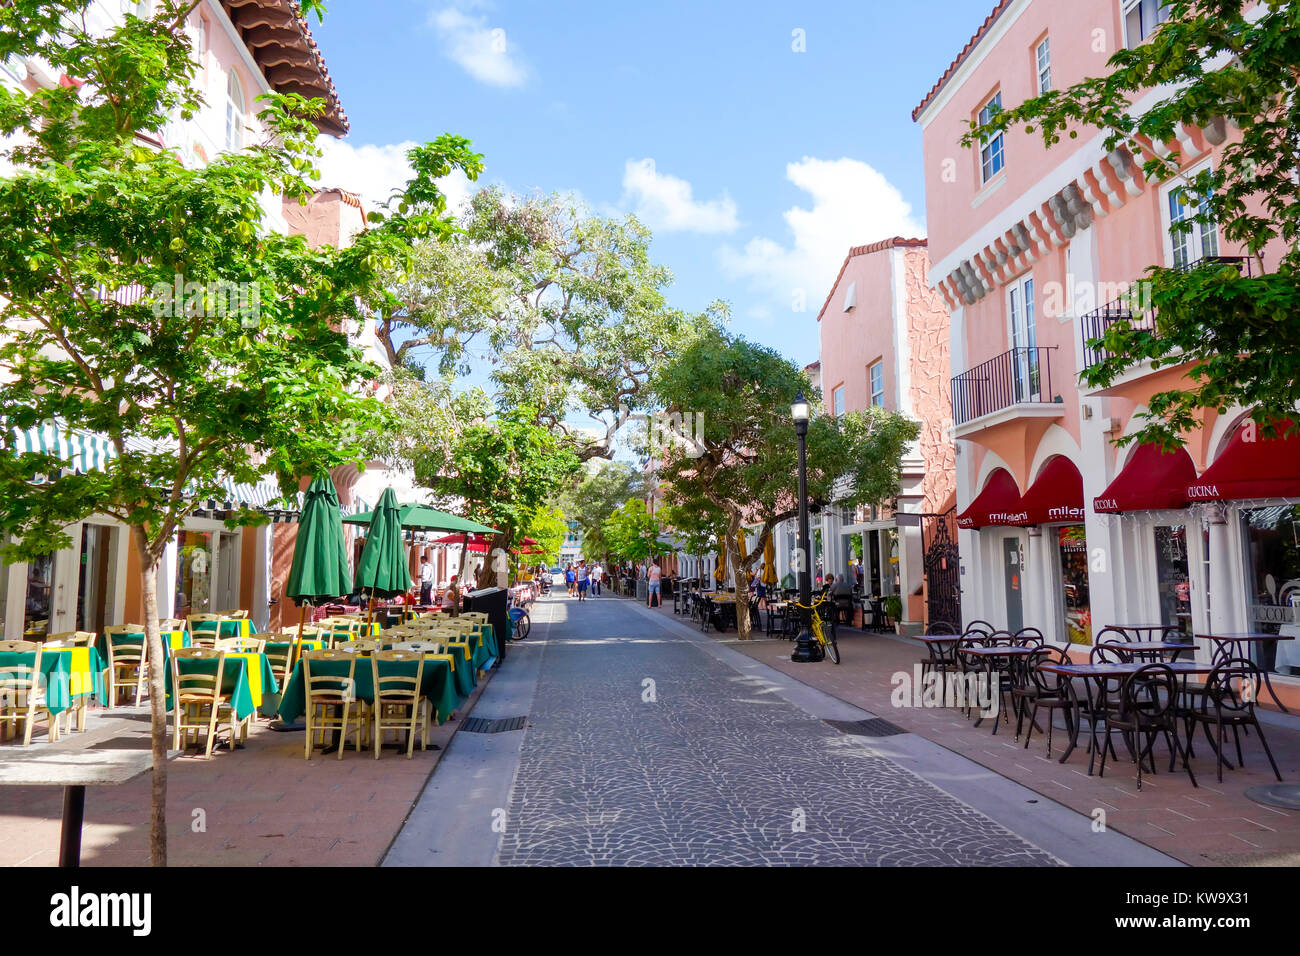 Restaurants Hotels and Shops on Espanola Way, a Mediterranean style street in South Beach Miami. - Stock Image